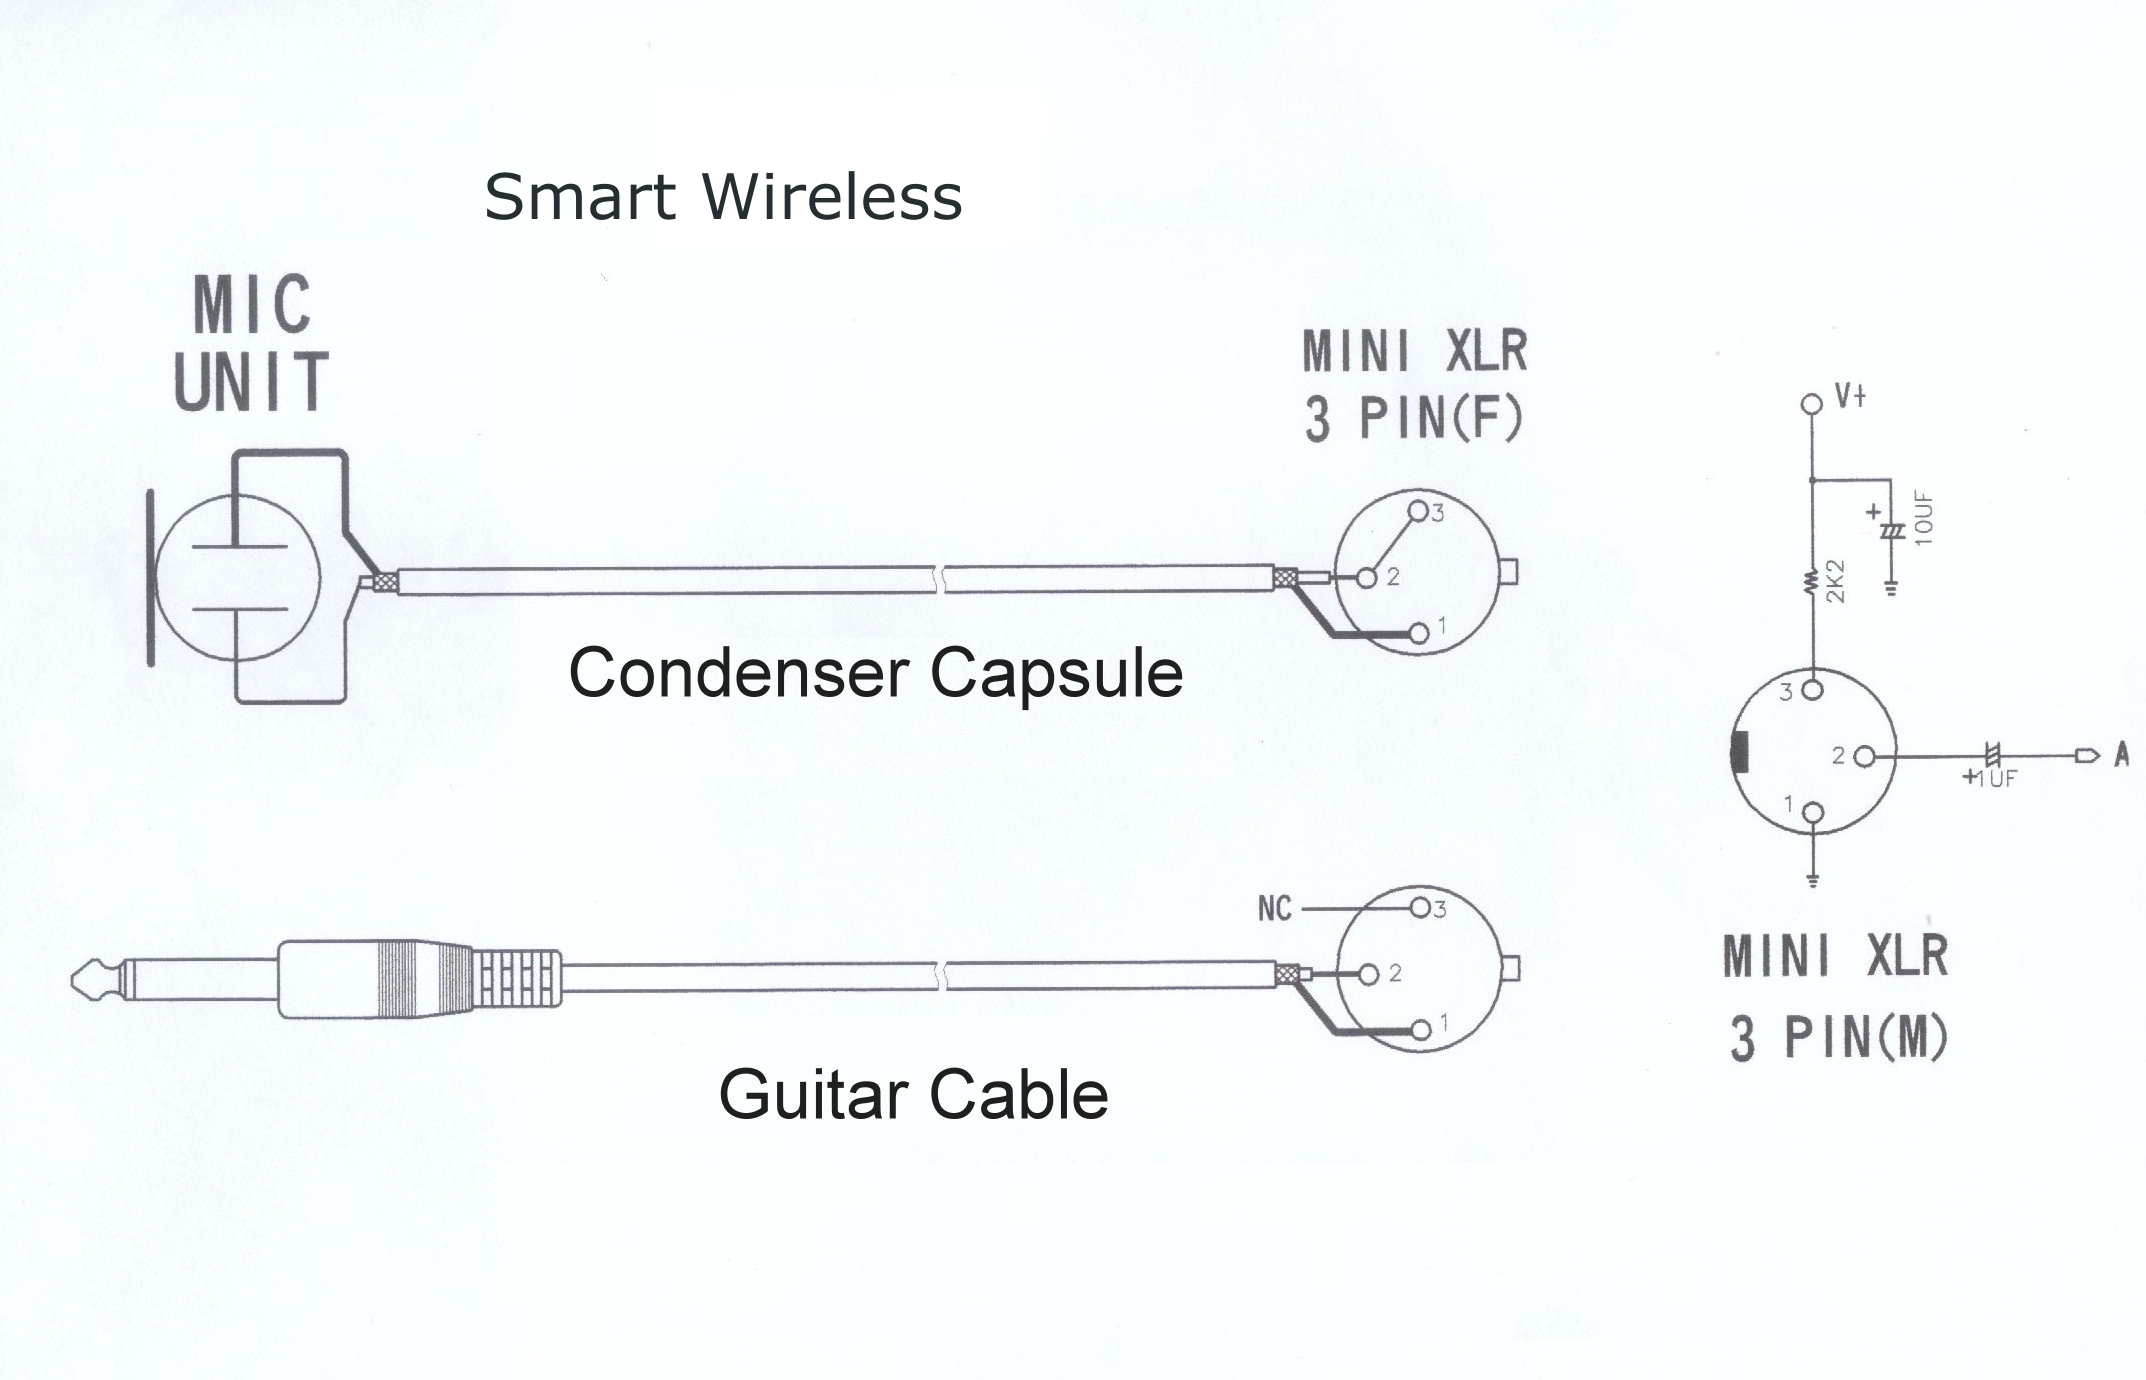 XLR Balanced Phone Unbalanced xlr mic wiring diagram xlr audio wiring diagram \u2022 free wiring XLR Jack Wiring at alyssarenee.co